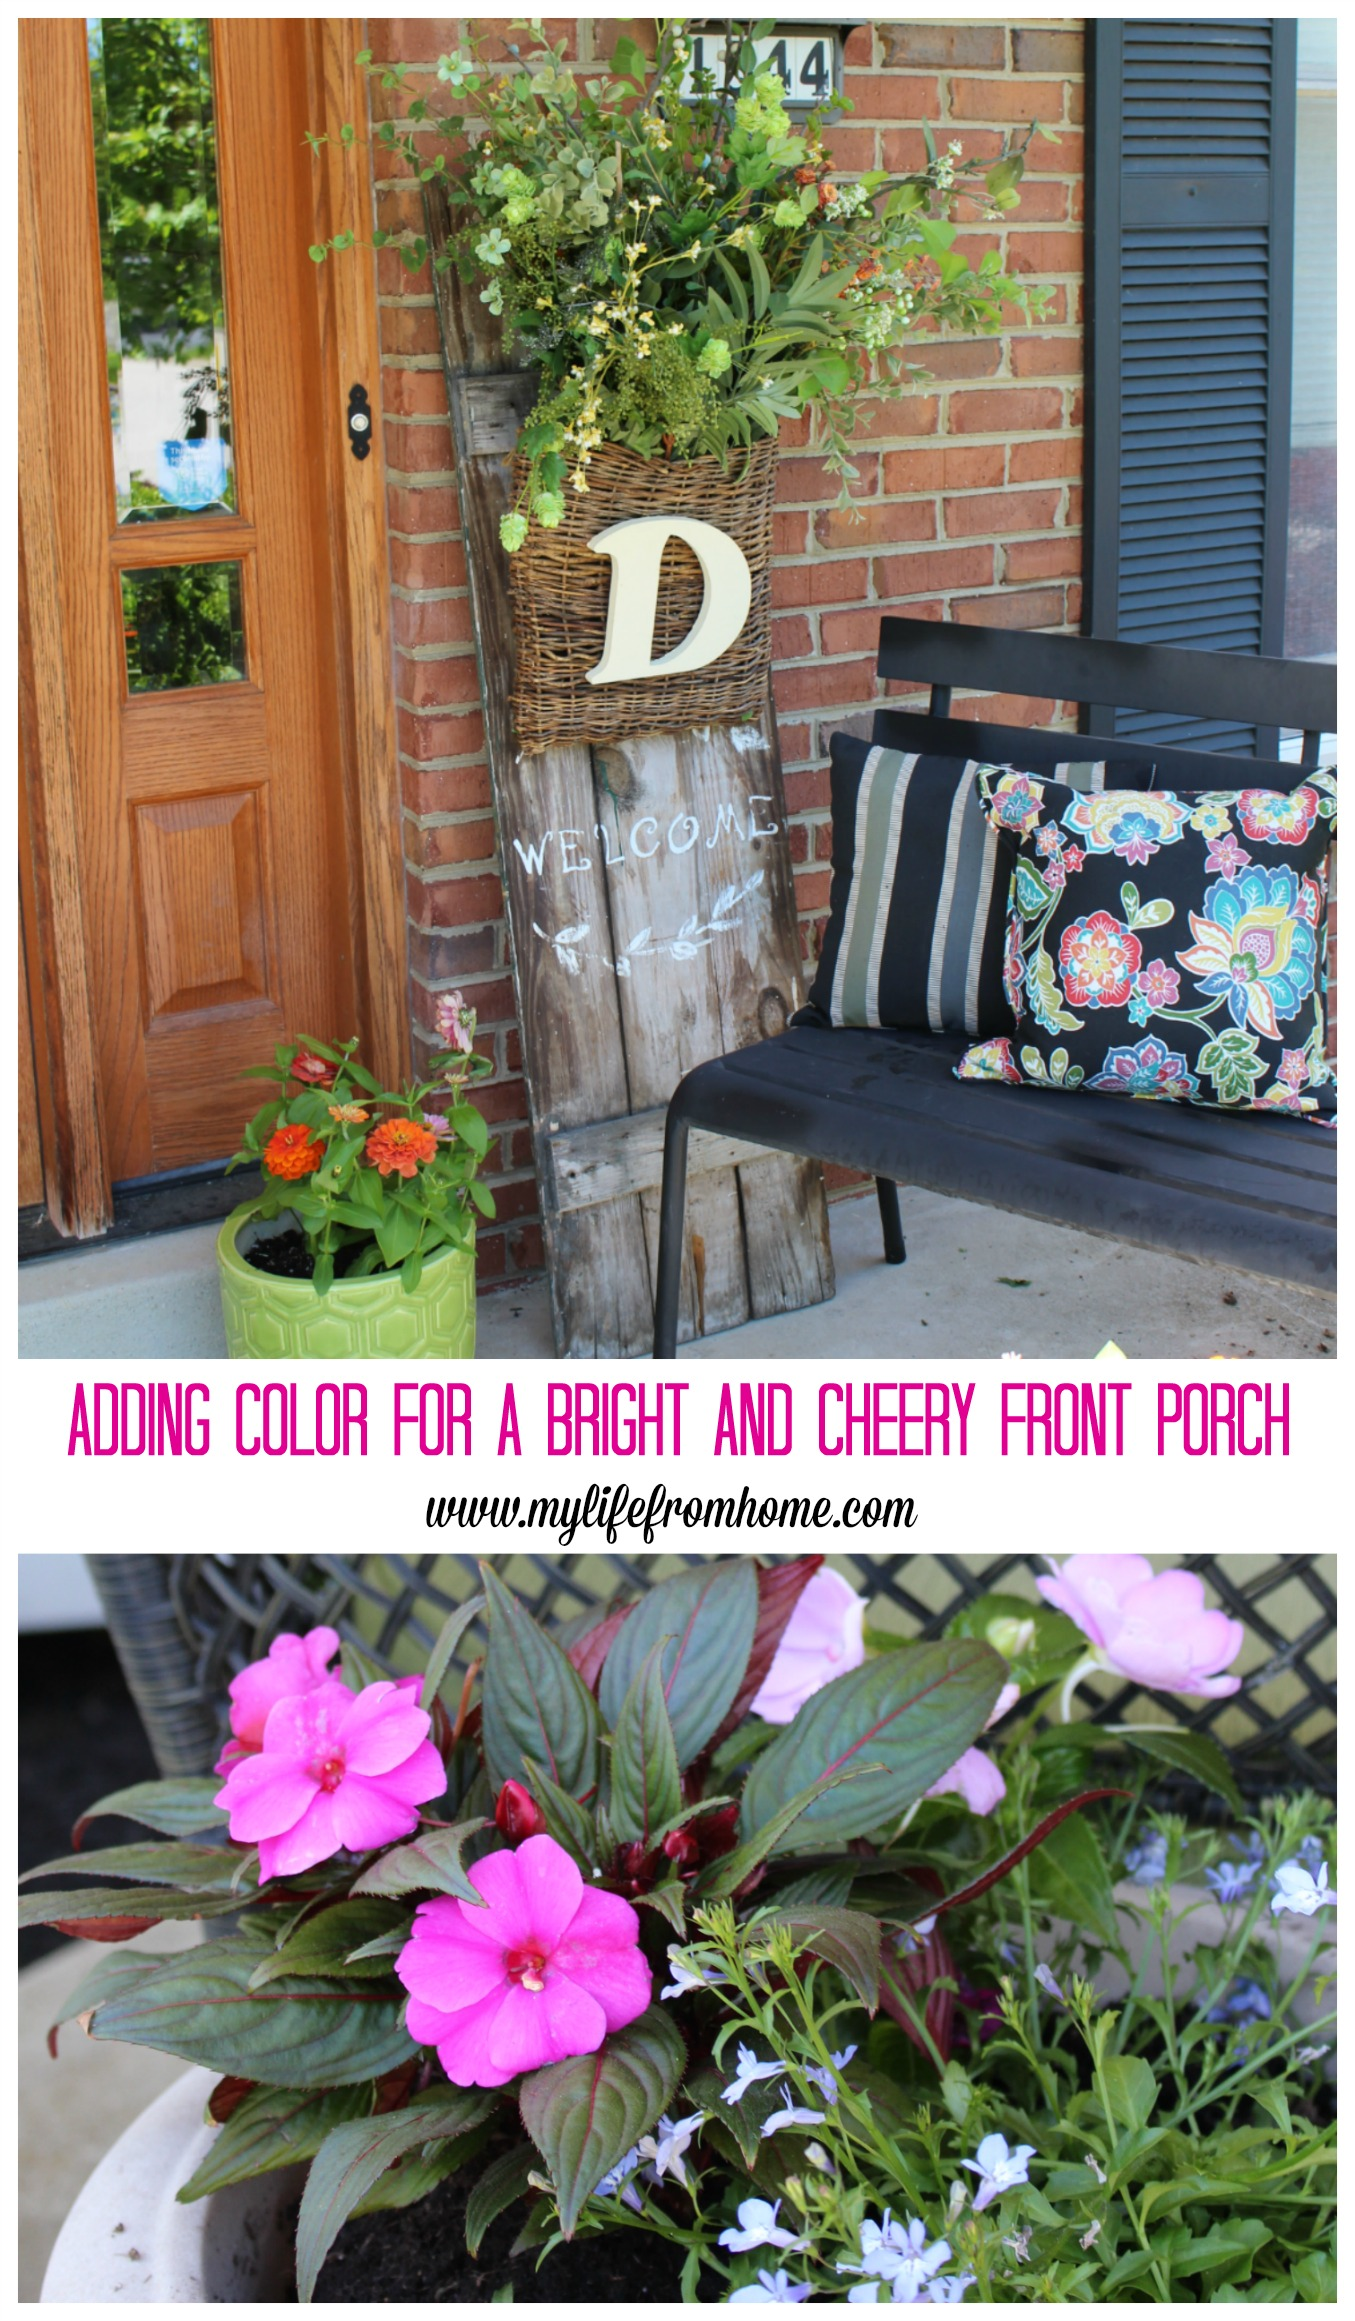 Spring Porch- Decorating for Spring- Outdoors- Flowers- Gardening- Monrovia- colorful plants- porch decor- outdoor spaces